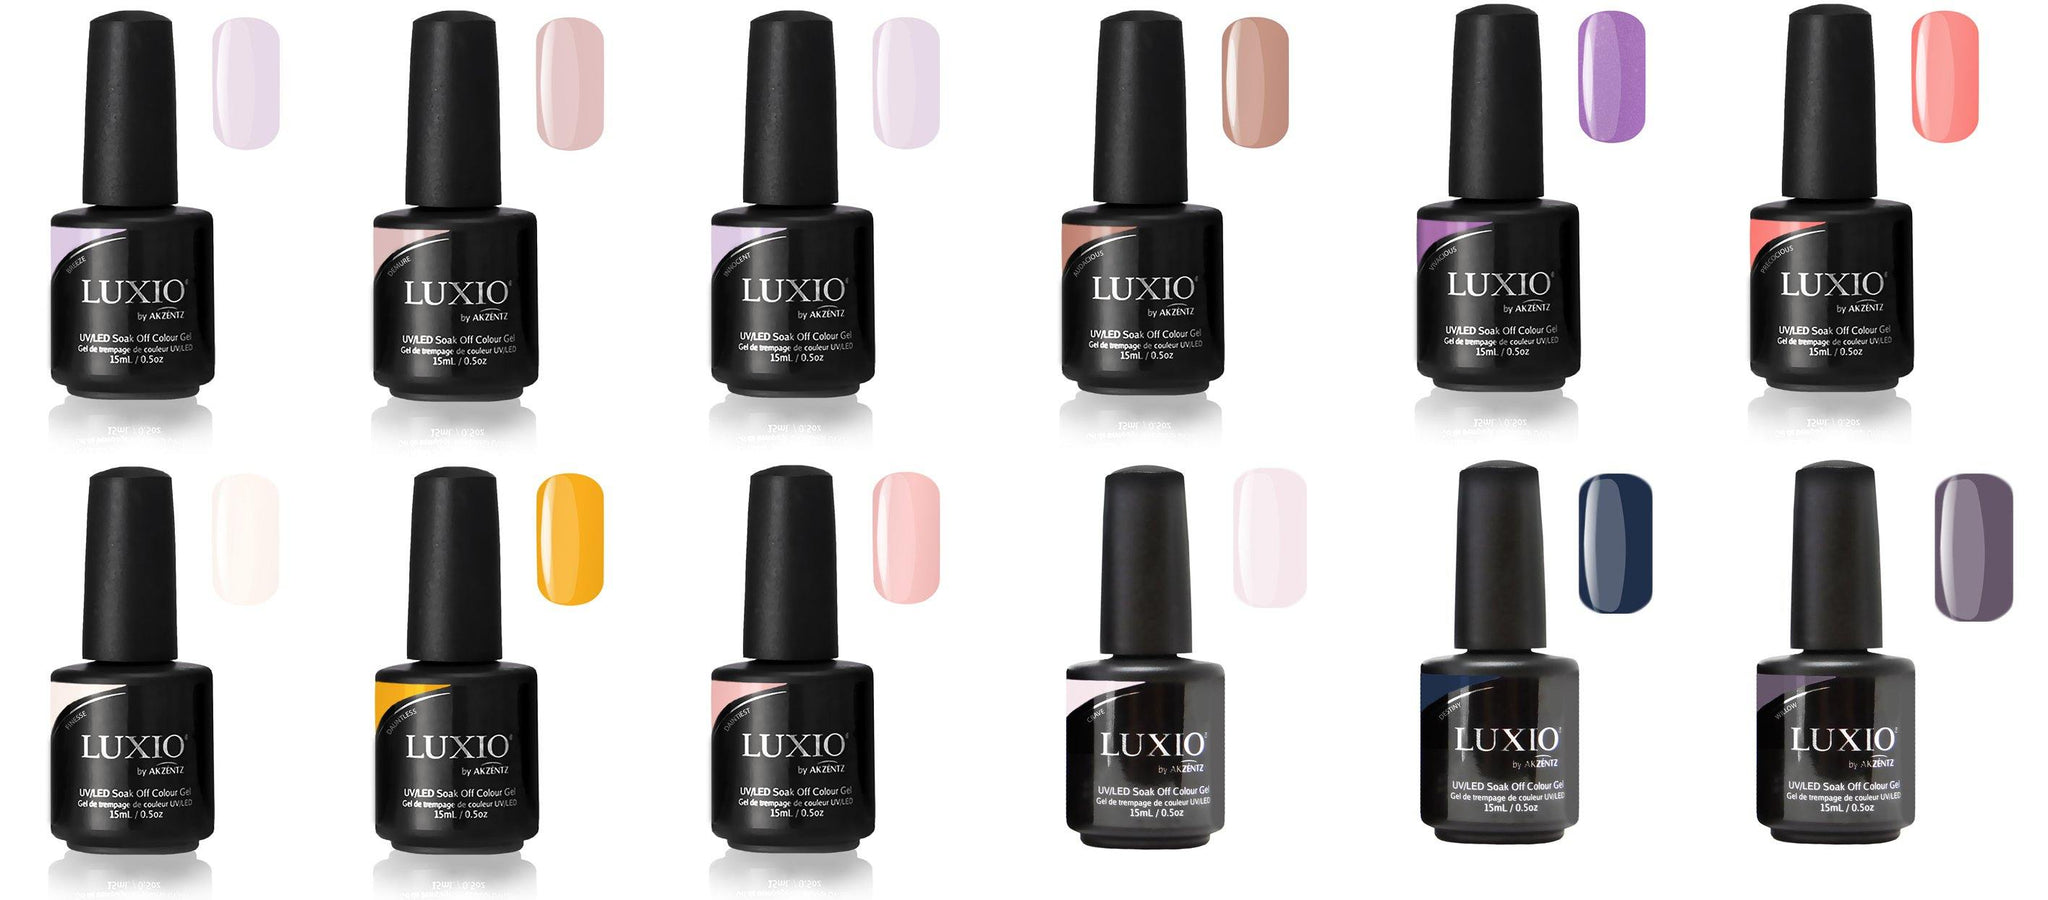 2019 Luxio Colour Collection (Fascination included!)